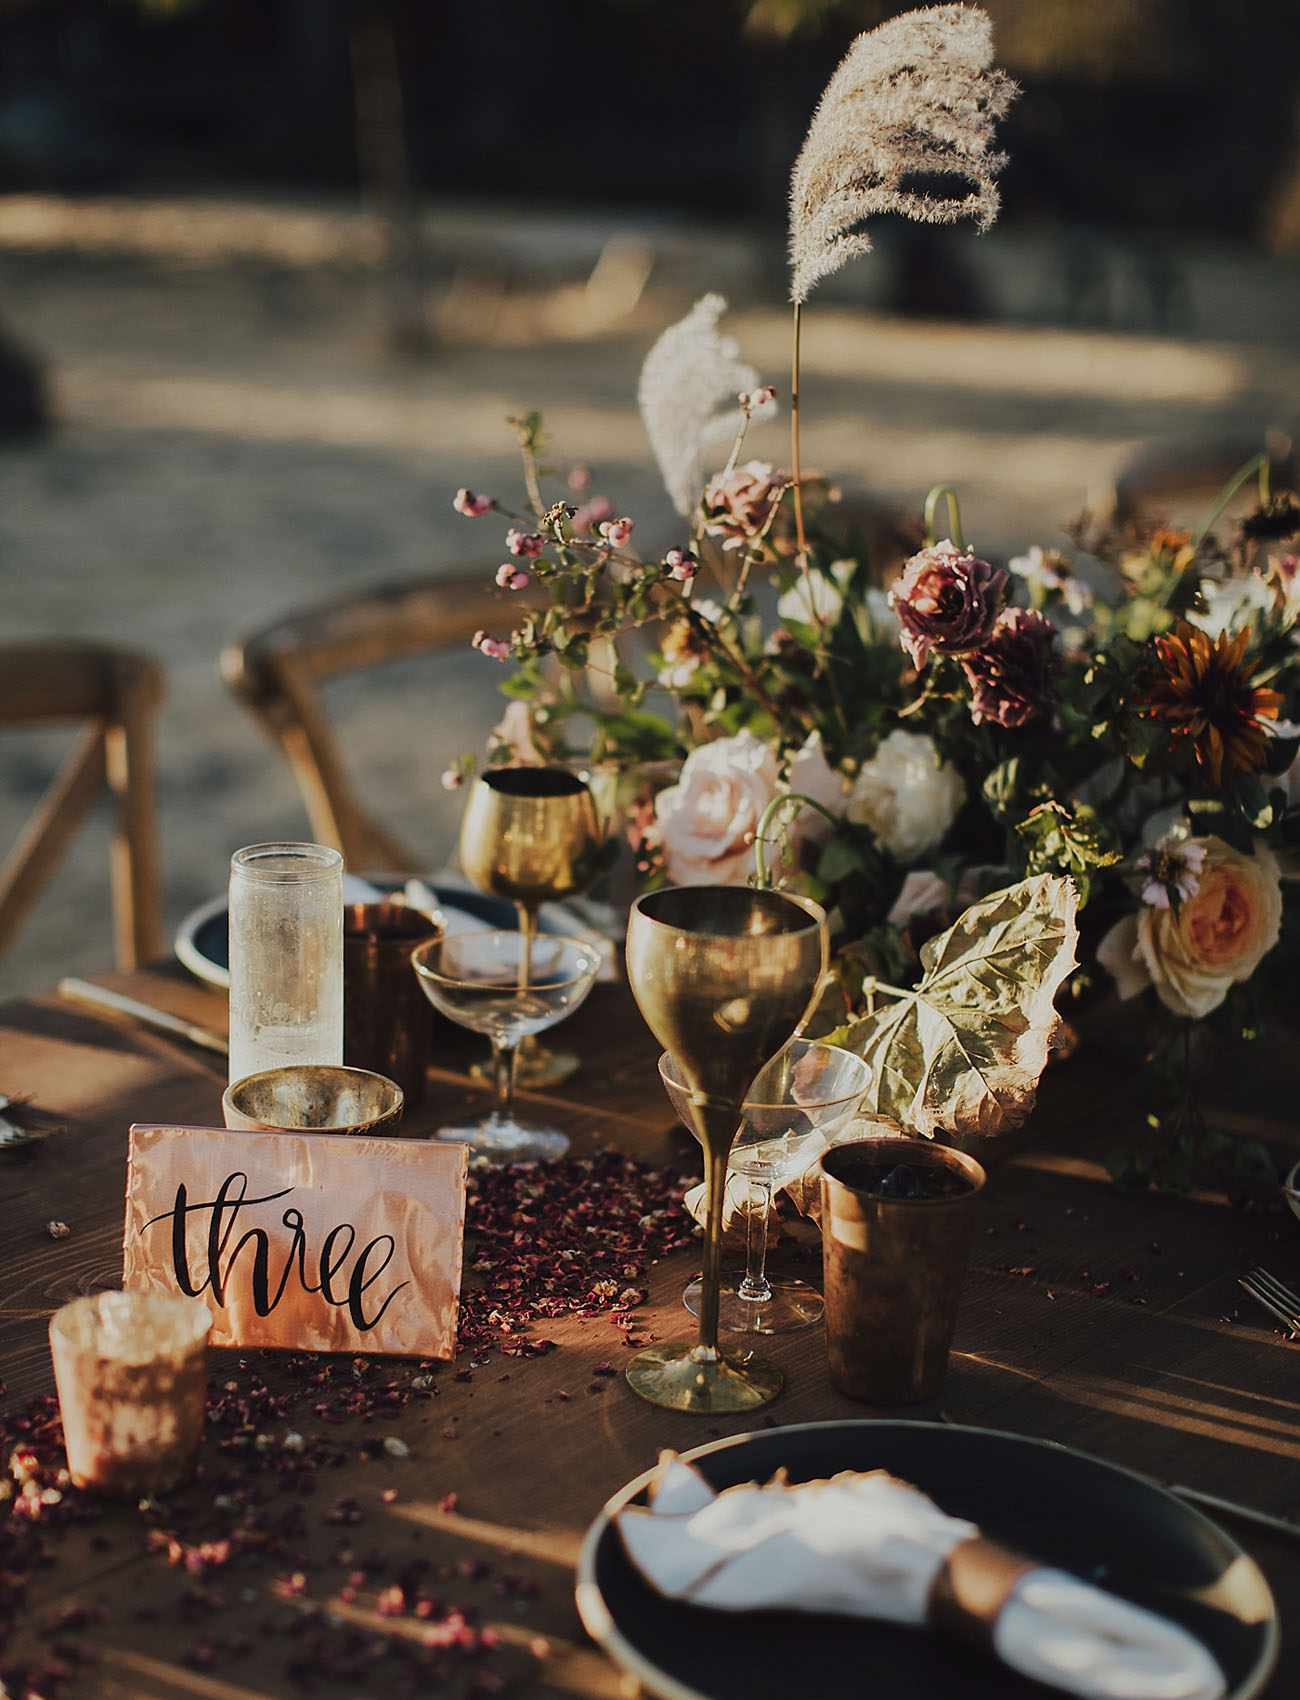 Calligraphy table sign at wedding reception.